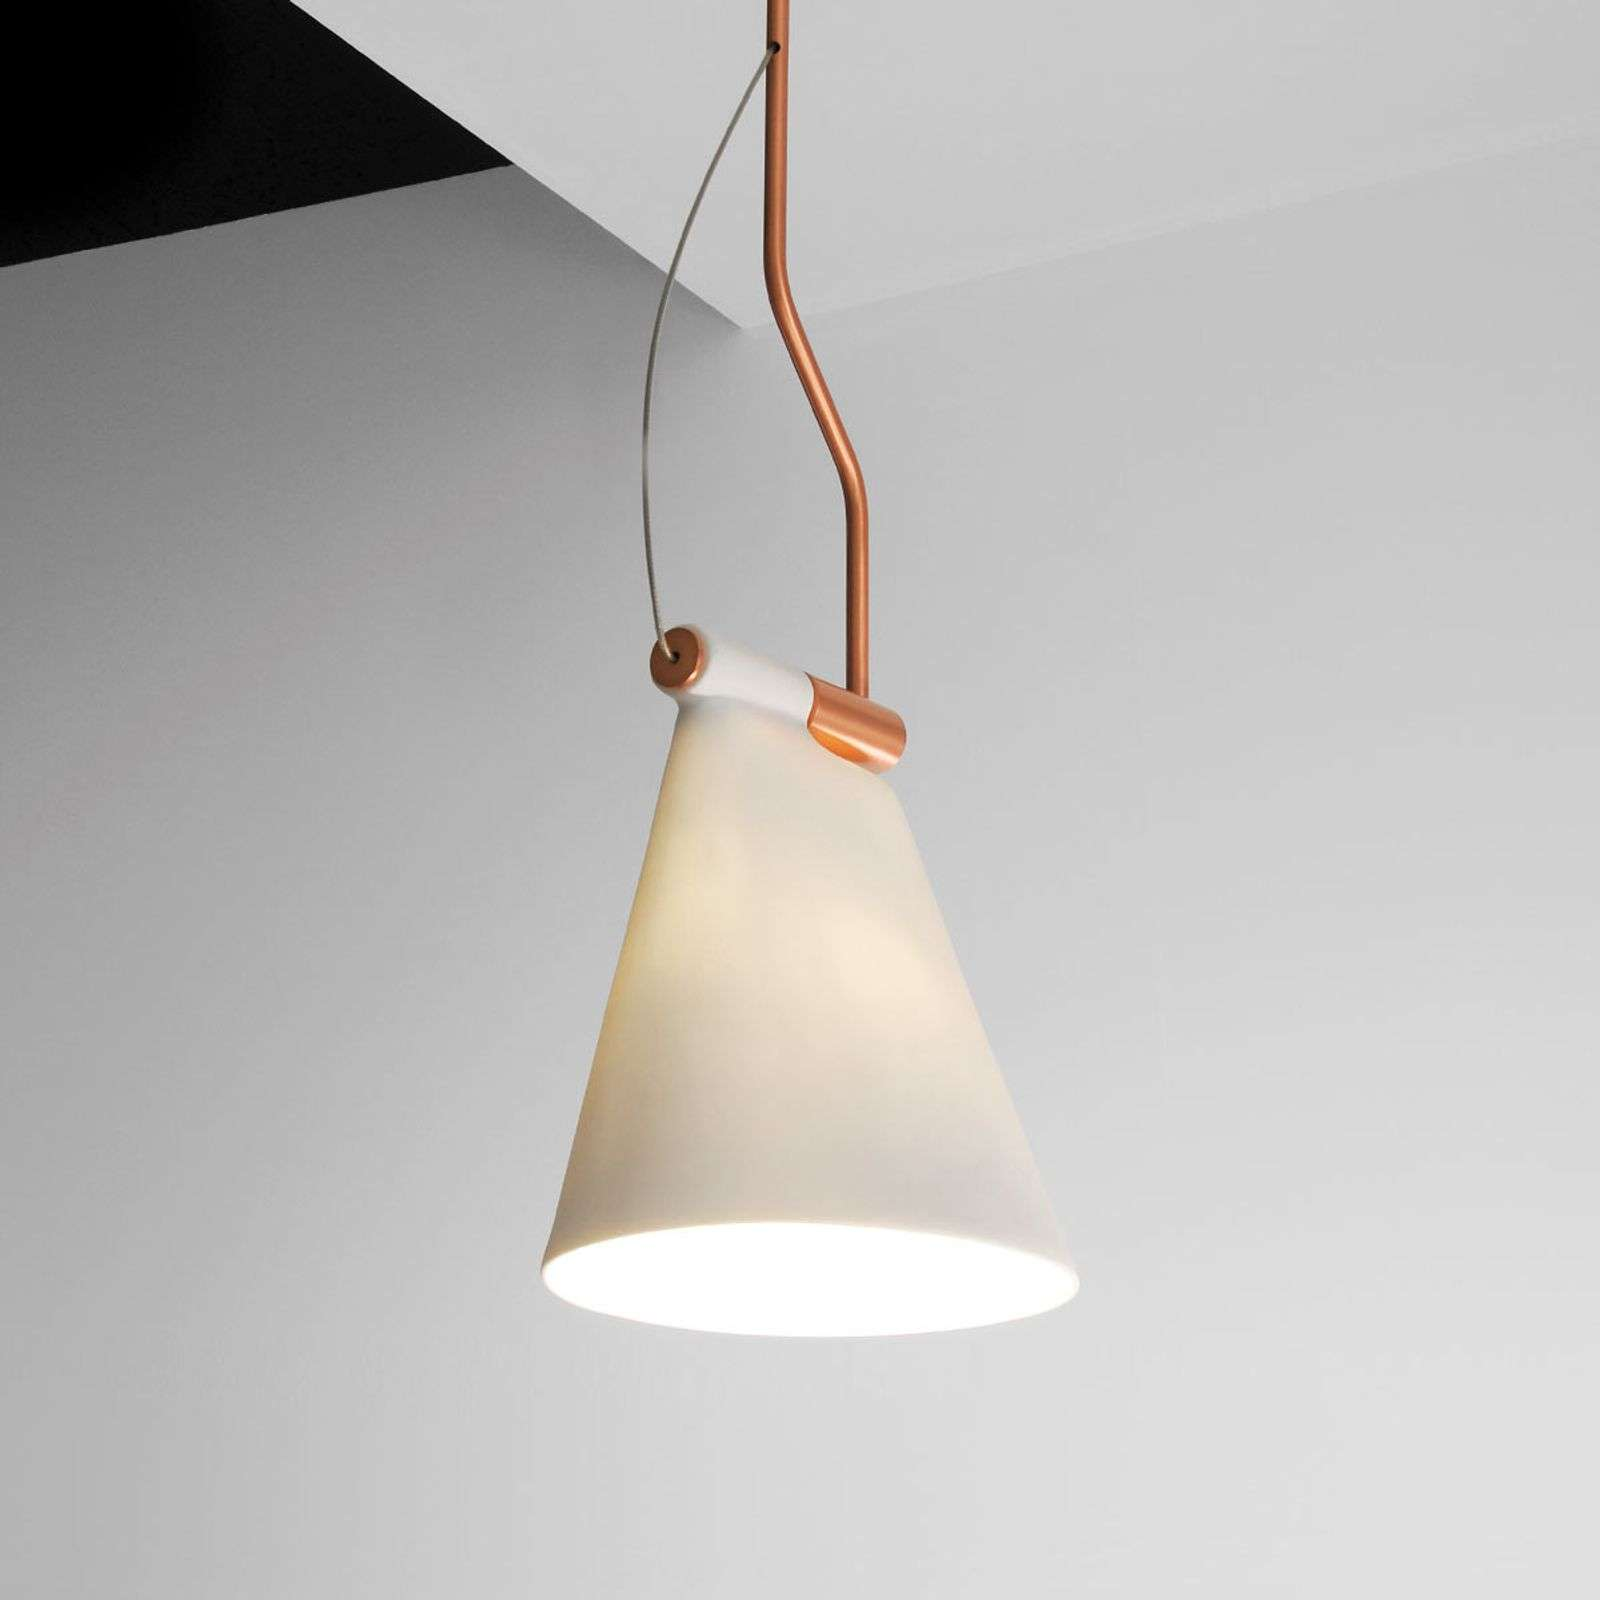 Suspension Cone Light S1, abat-jour en porcelaine